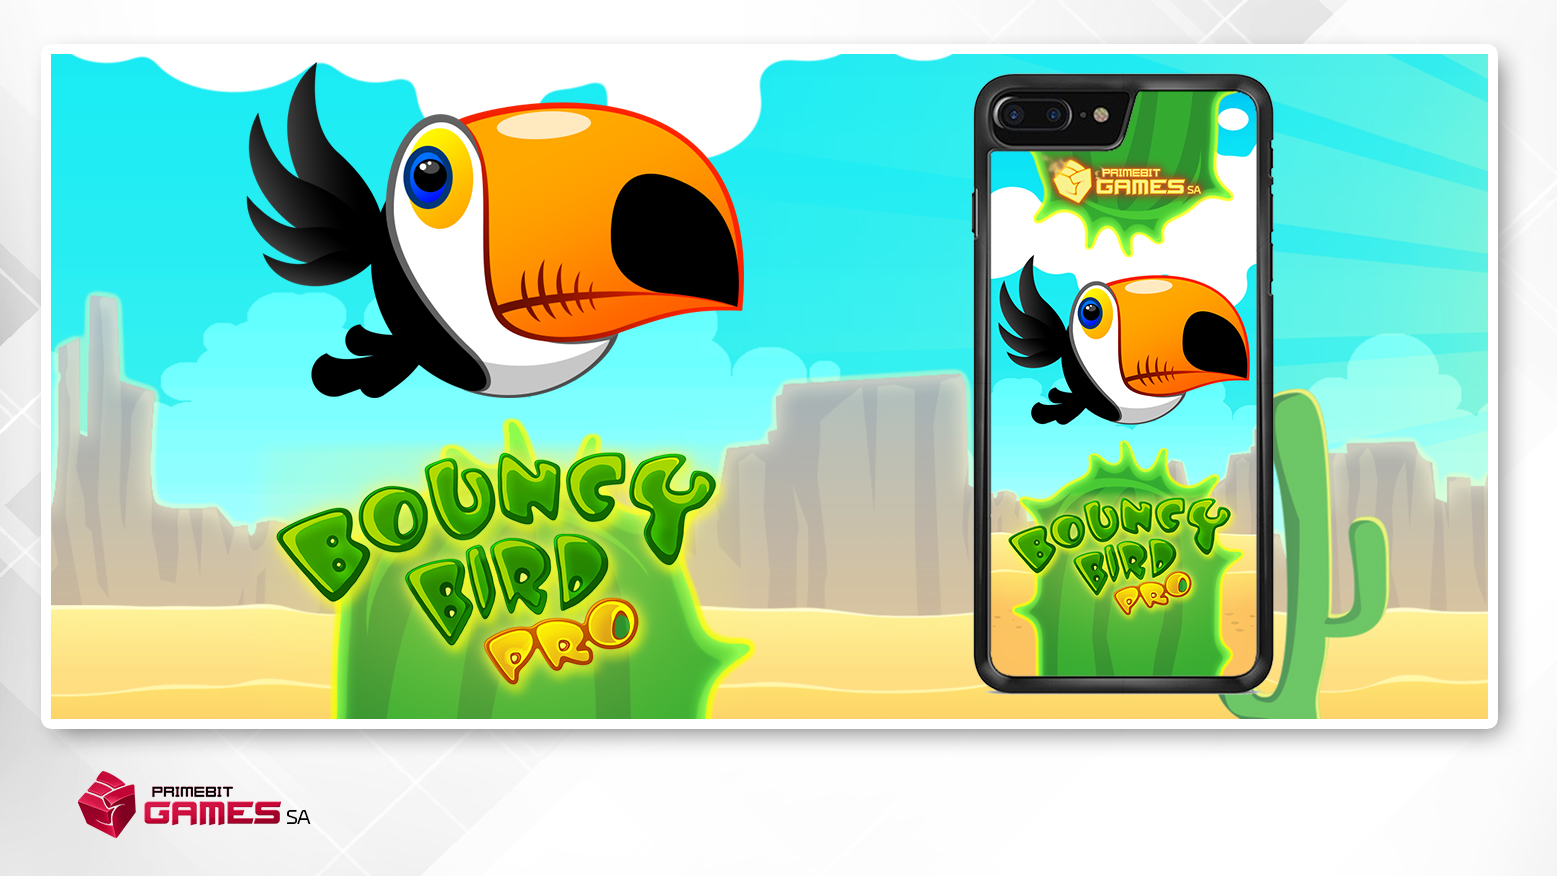 Etui na telefon - Bouncy Bird 2